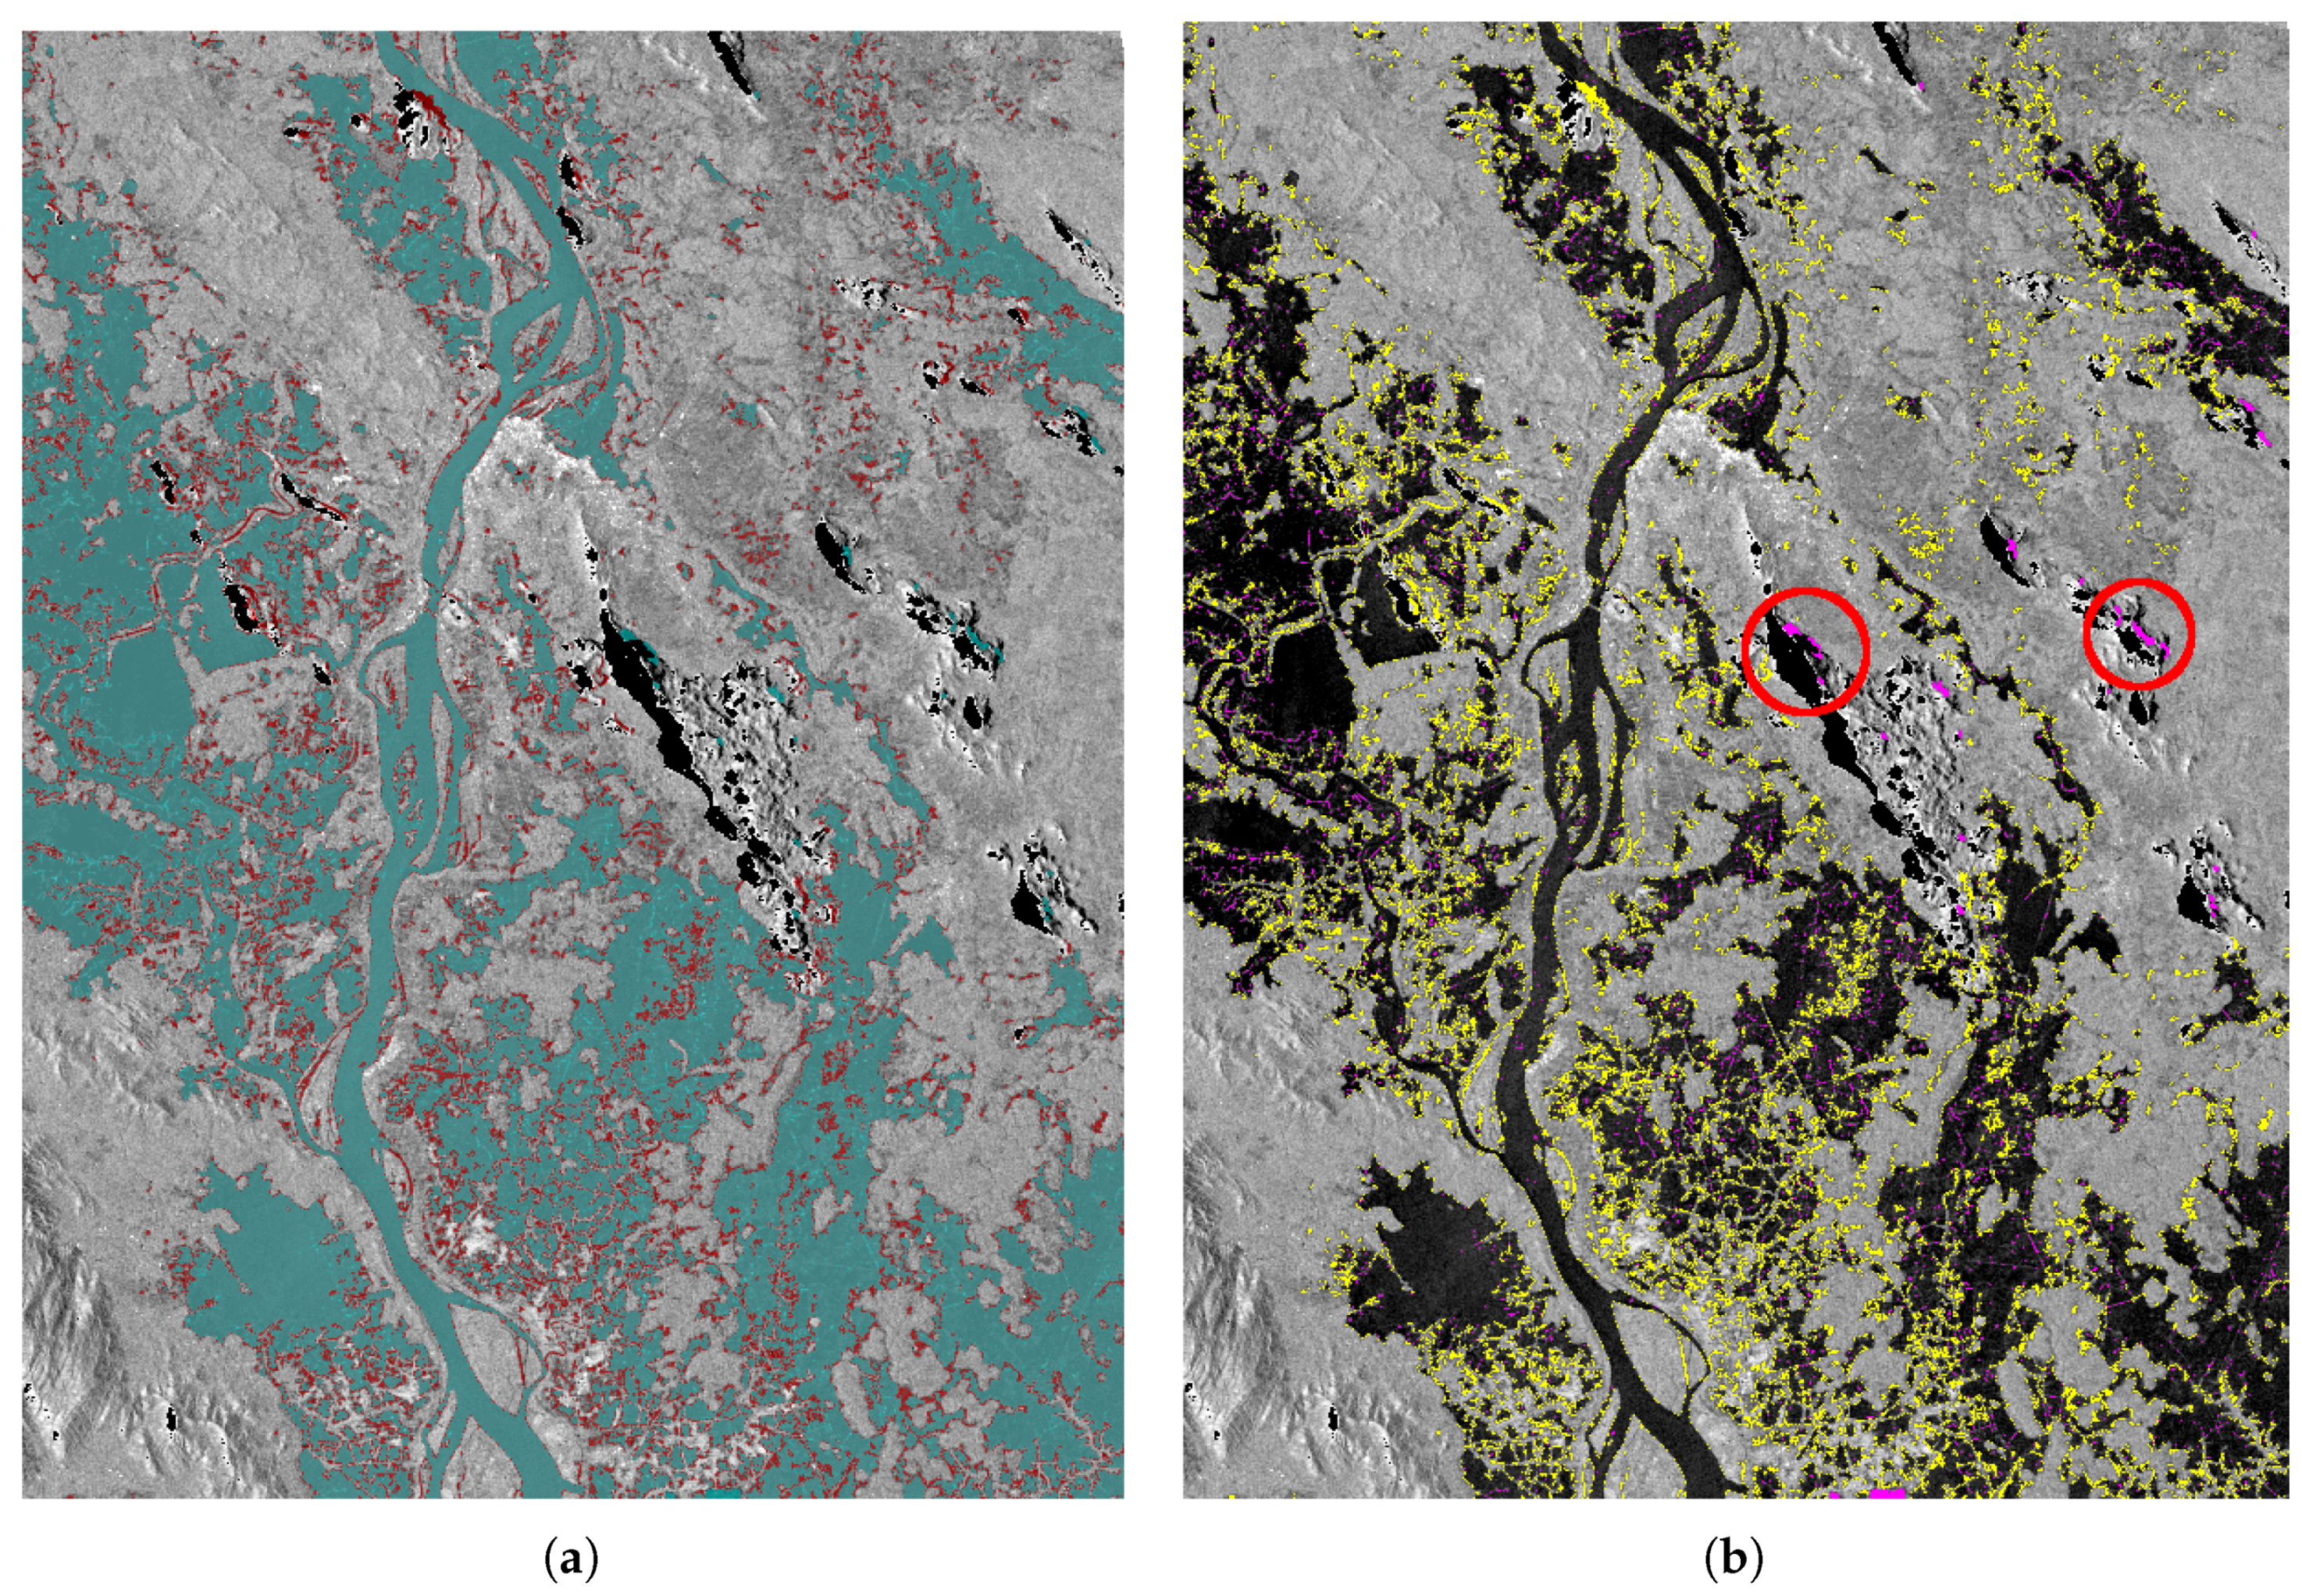 Remote Sensing | Free Full-Text | A Novel Fully Automated ... on flood mitigation, flood information, flood alleviation, flood chart, flood hazards, flood engineering, flood protection, flood management, satellite mapping, flood photography, flood graphics, flood lighting, flood risk assessments, flood routing, flood maps, flood data, flood science,